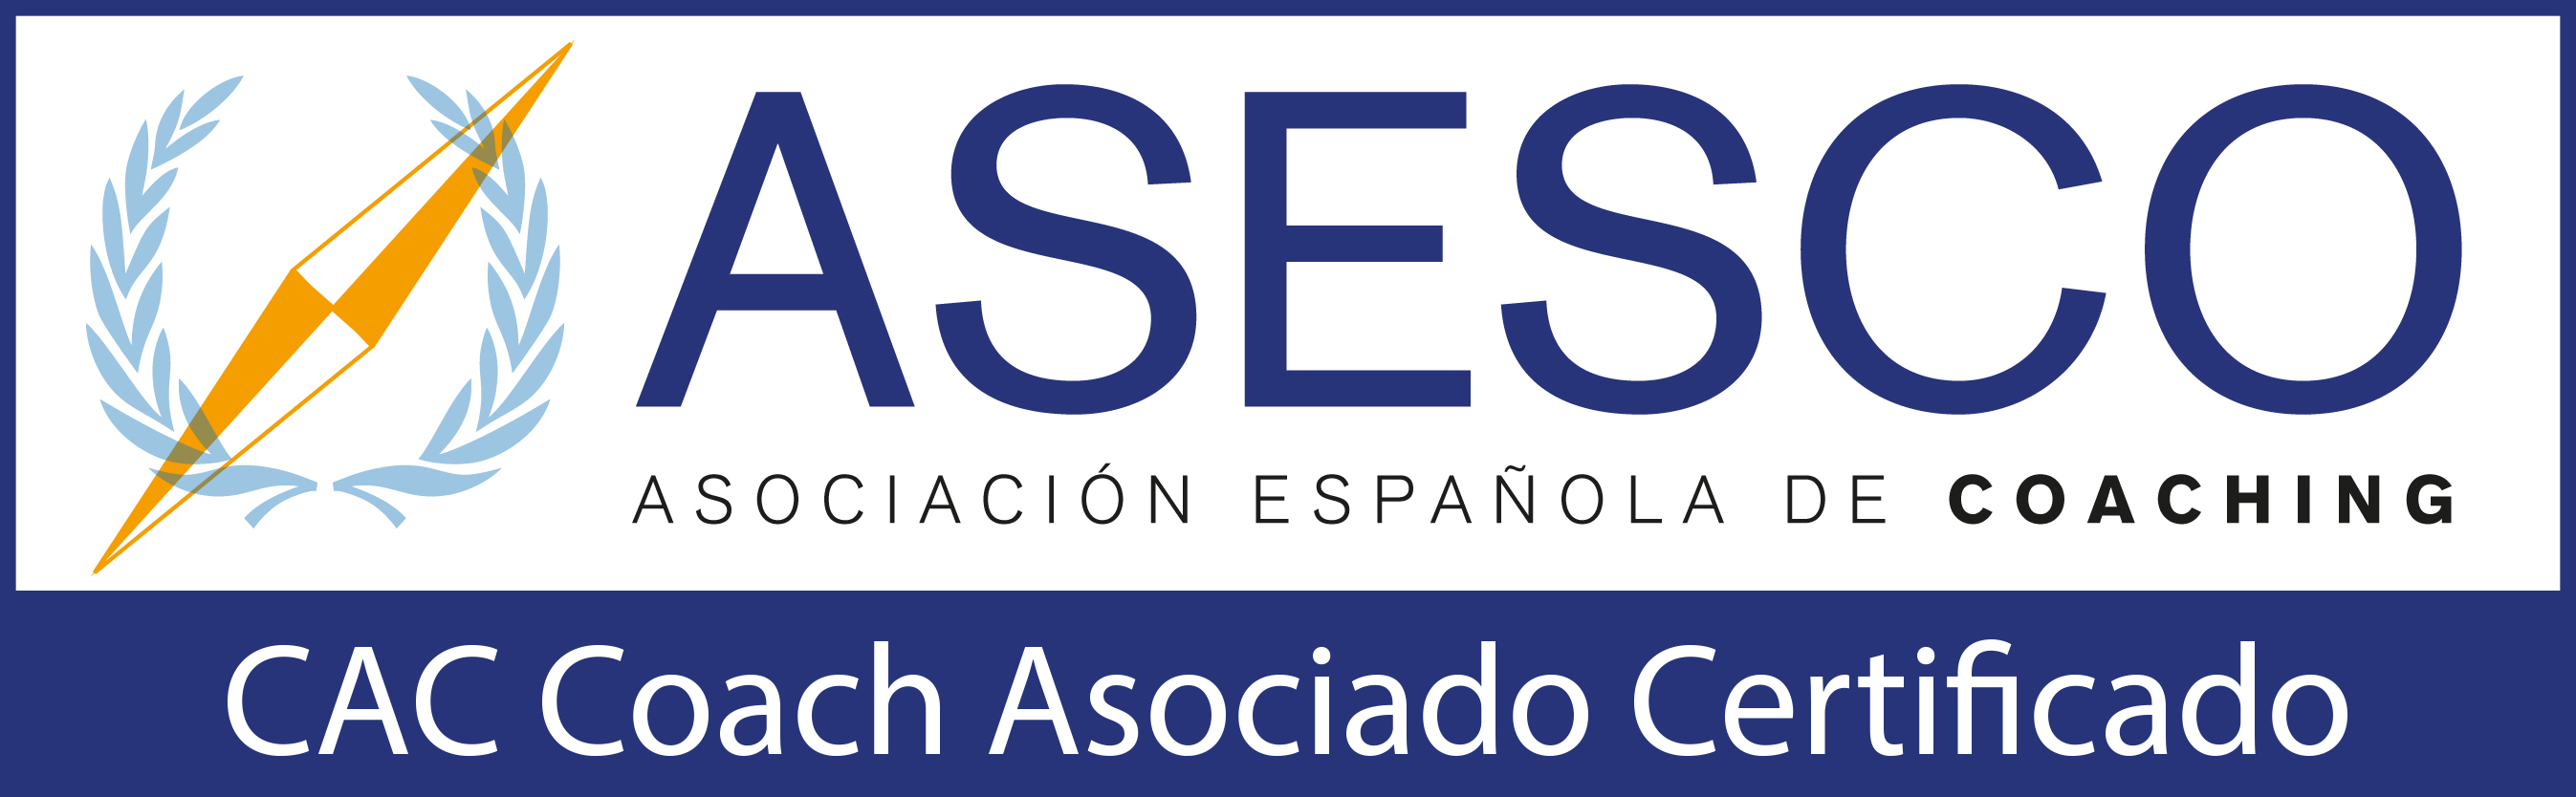 logo_asesco_alta_resolució_jpegCAC